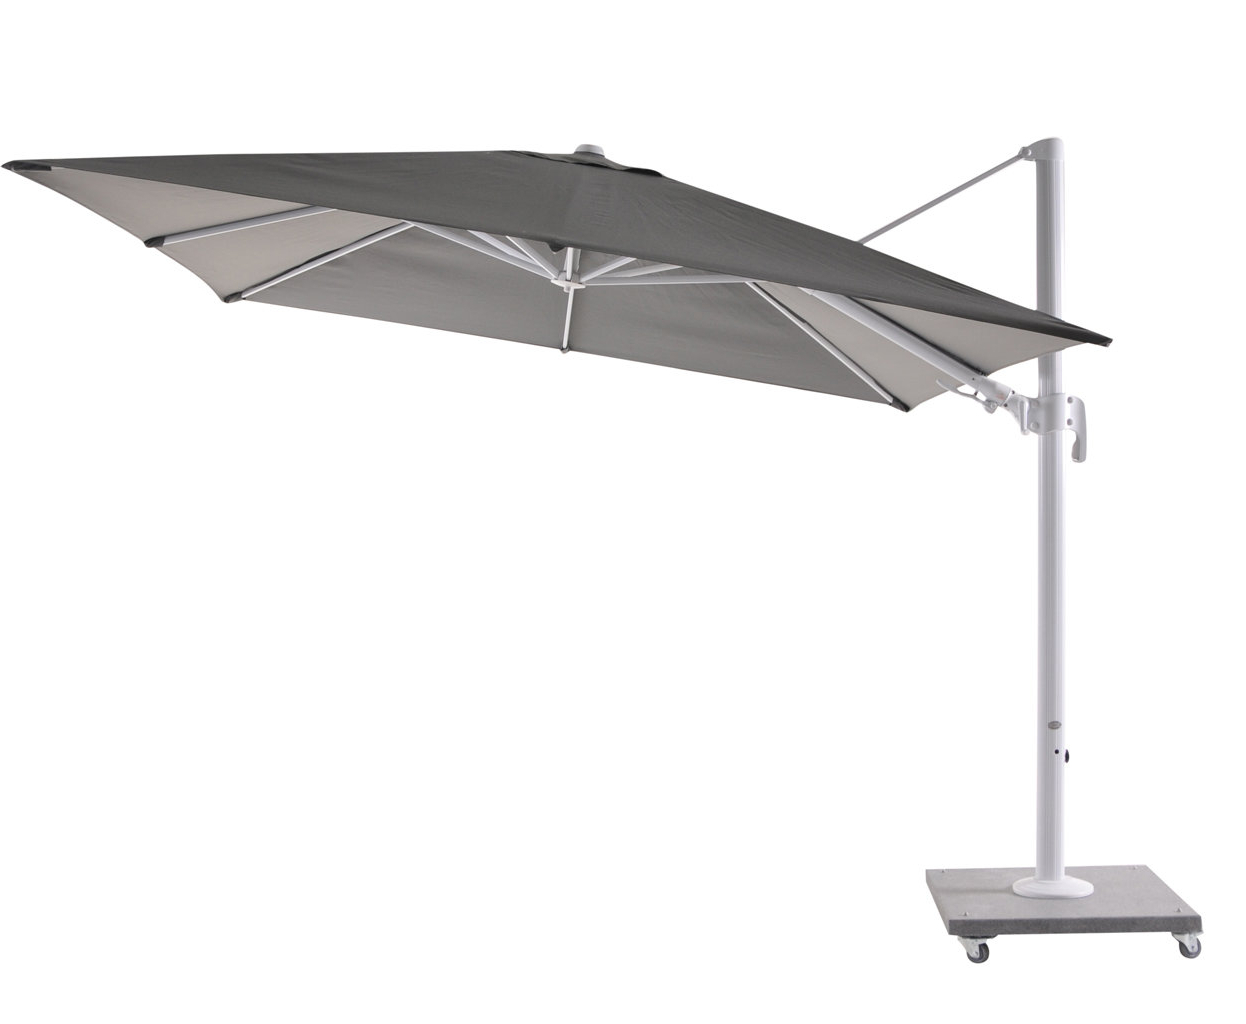 Well Liked Gemmenne Square Cantilever Umbrellas For Bozarth 10' Square Cantilever Umbrella (View 12 of 20)